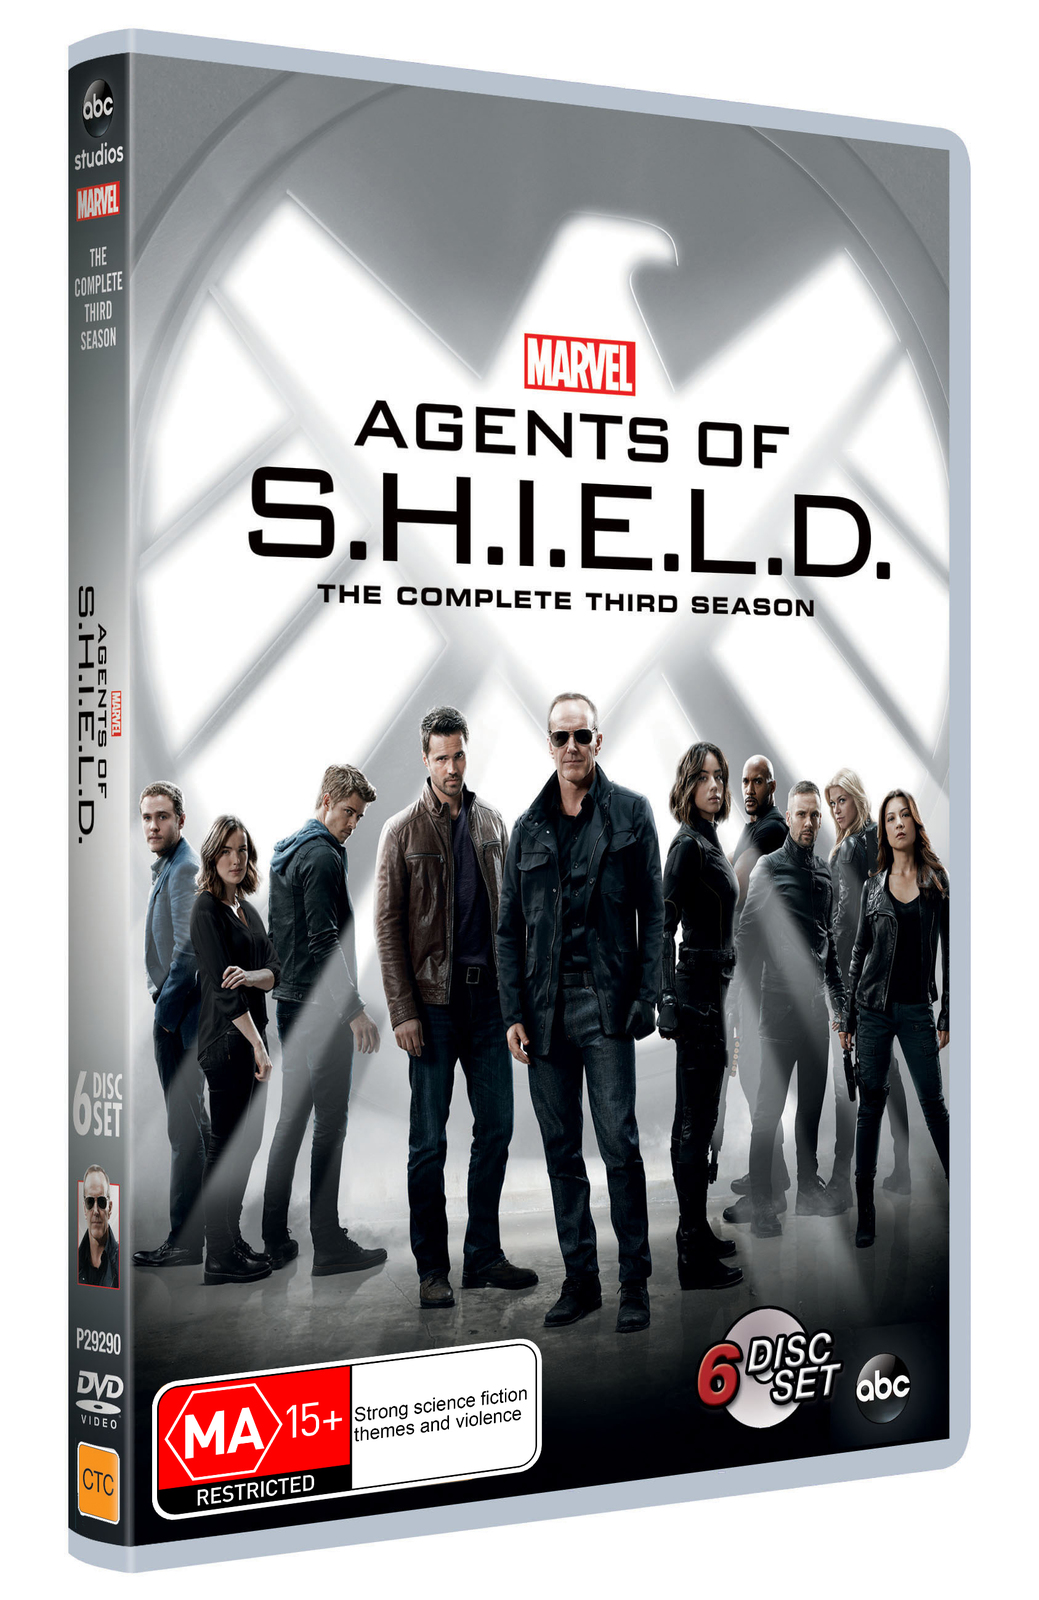 Marvel's Agents of S.H.I.E.L.D - The Complete Third Season on DVD image